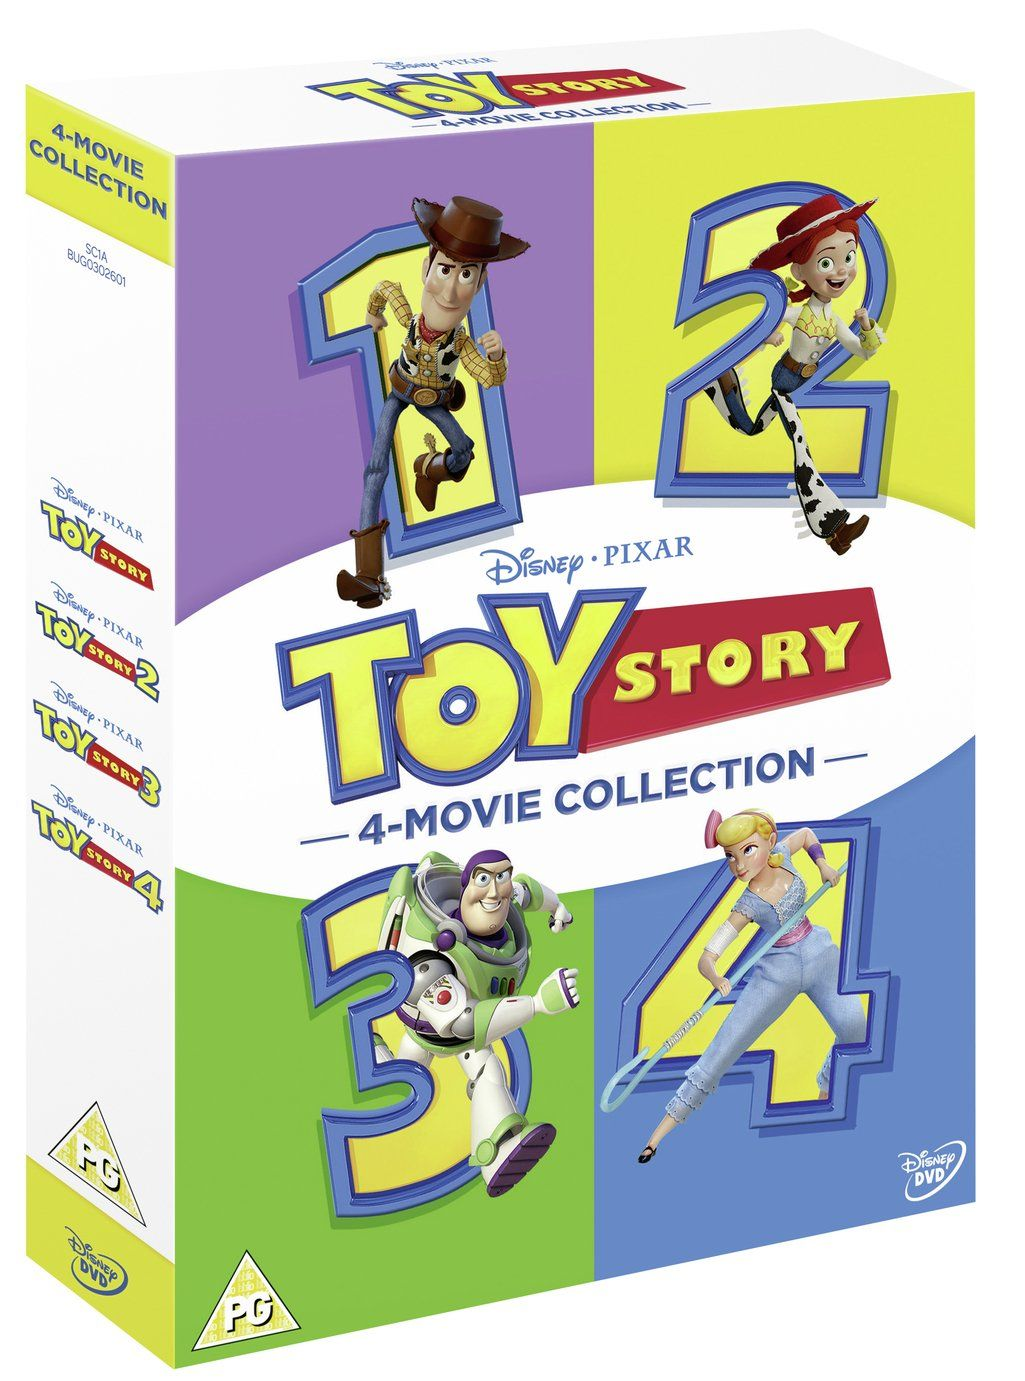 Toy Story 1 4 Complete Dvd Box Set In 2020 Toy Story Toy Story 3 Disney Pixar